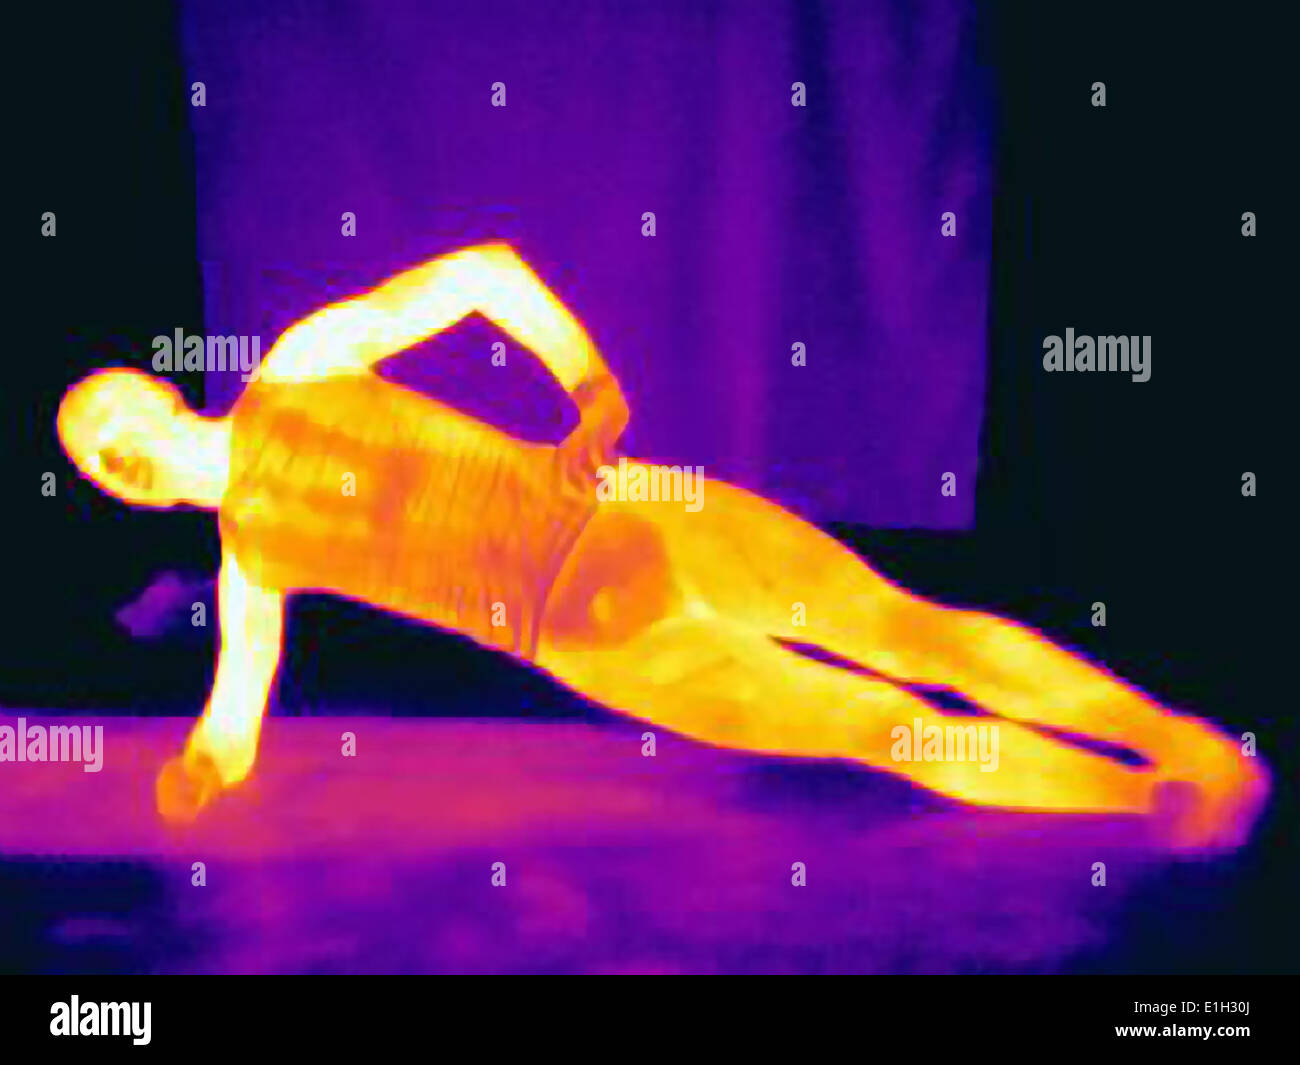 Thermal image of young male athlete doing one arm push ups. The image shows the heat produced by the muscles - Stock Image